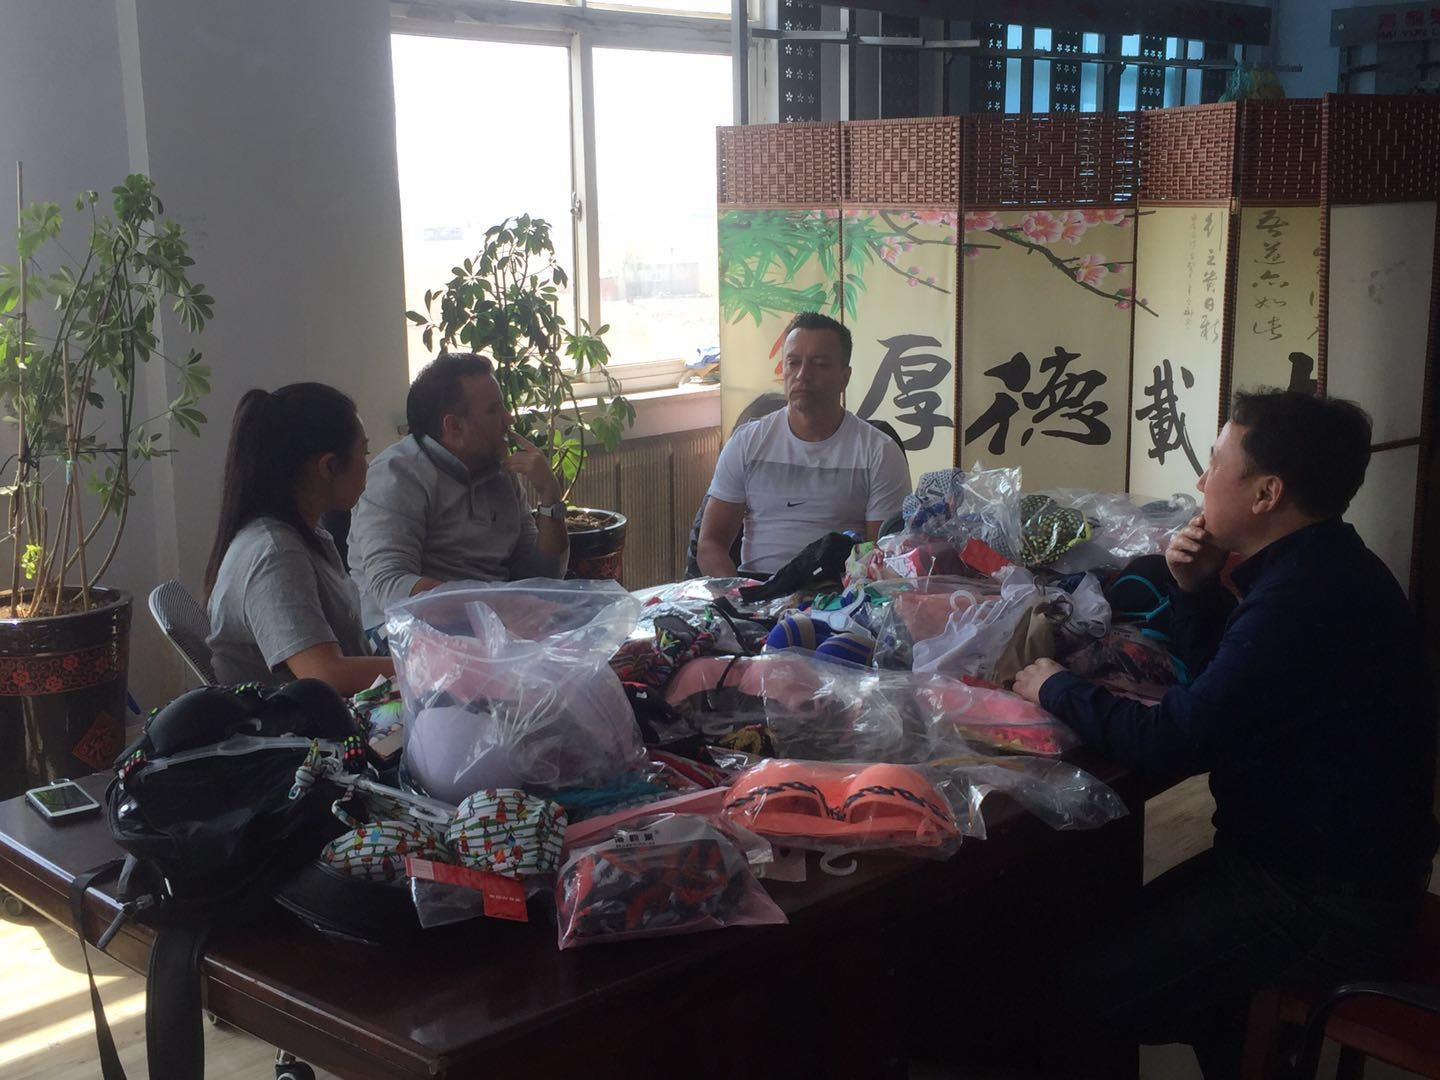 Colombian customers come to the factory to purchase swimwear and other related products